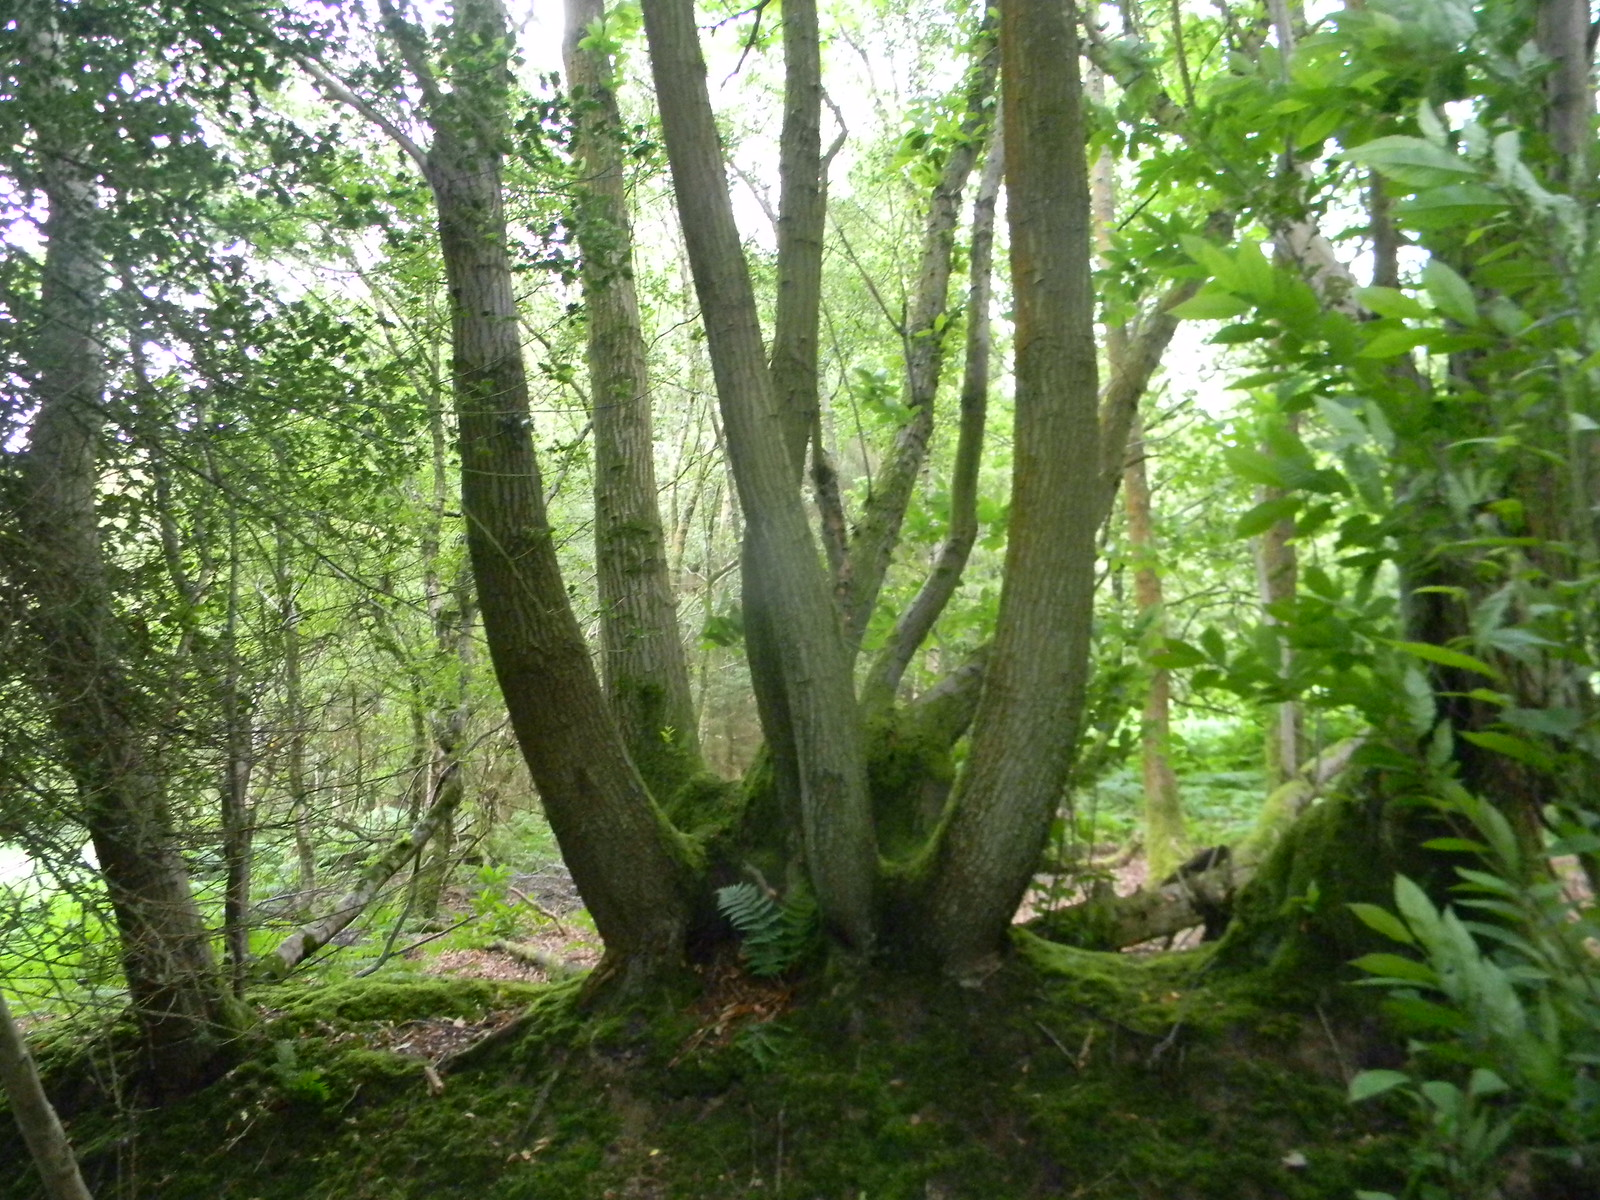 Coppiced tree Horsted Keynes to Forest Row